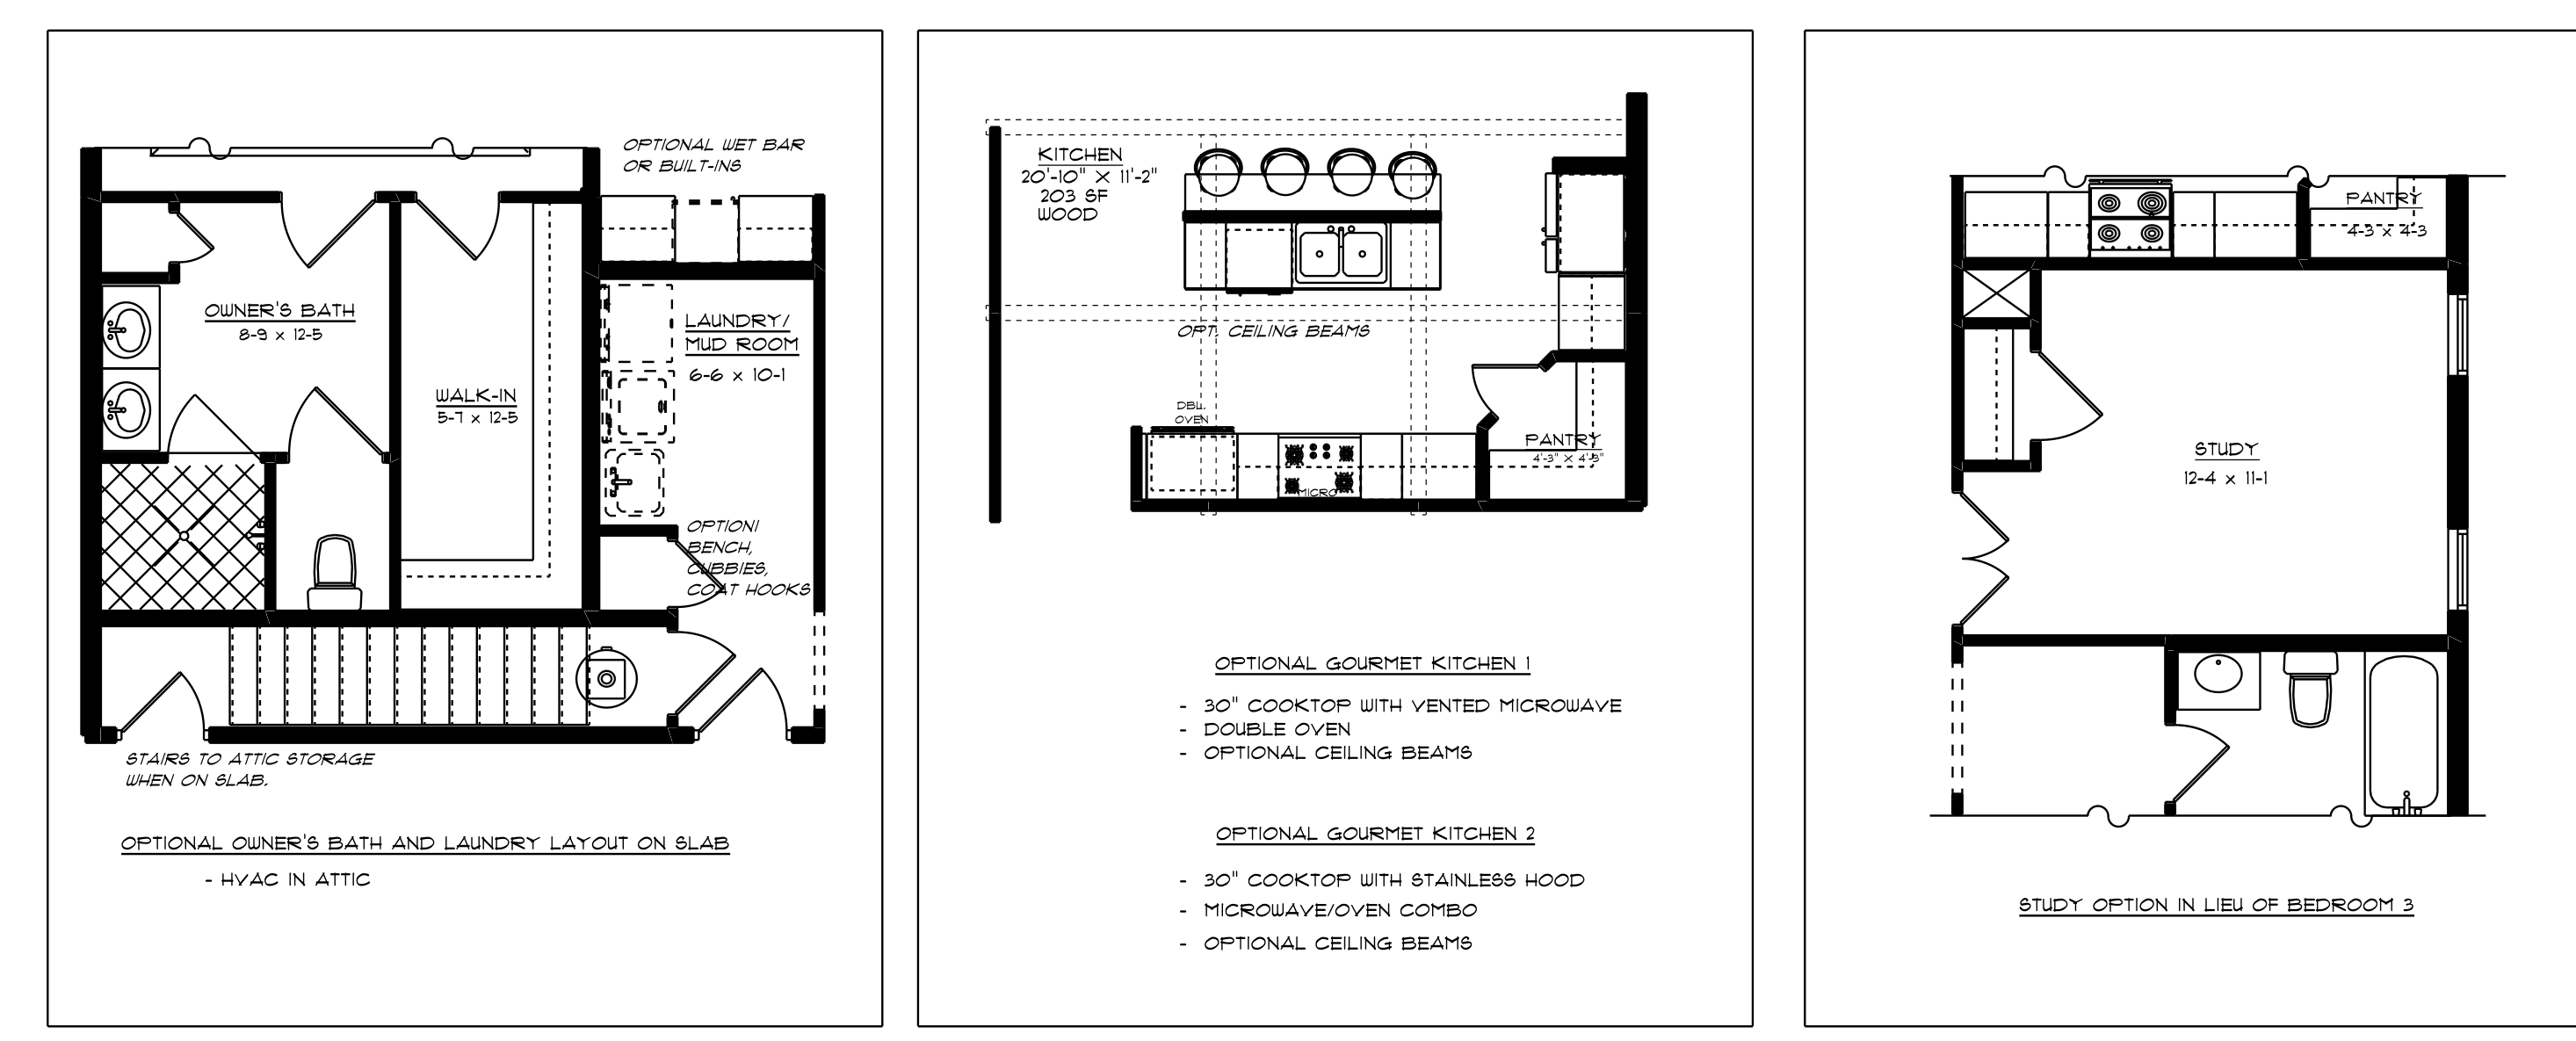 Pavilion First Floor Plan Options